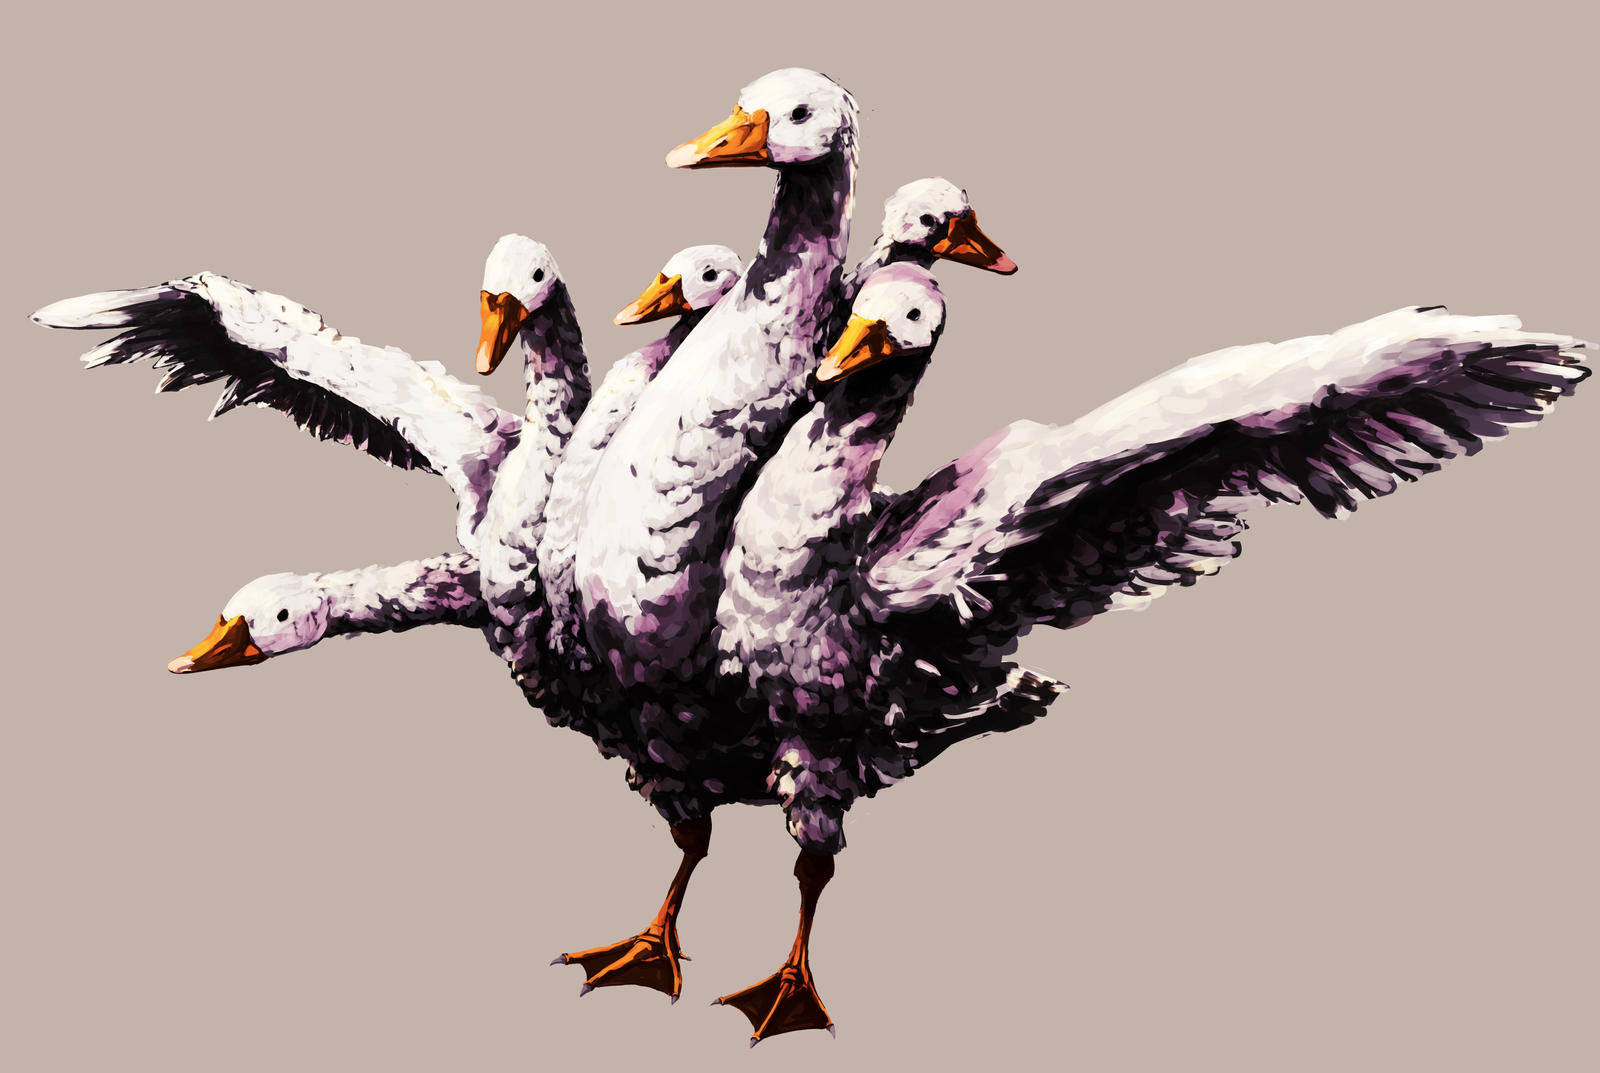 the_exotic__the_hydra_goose_by_pgeronimos_dd3j11f-fullview.png